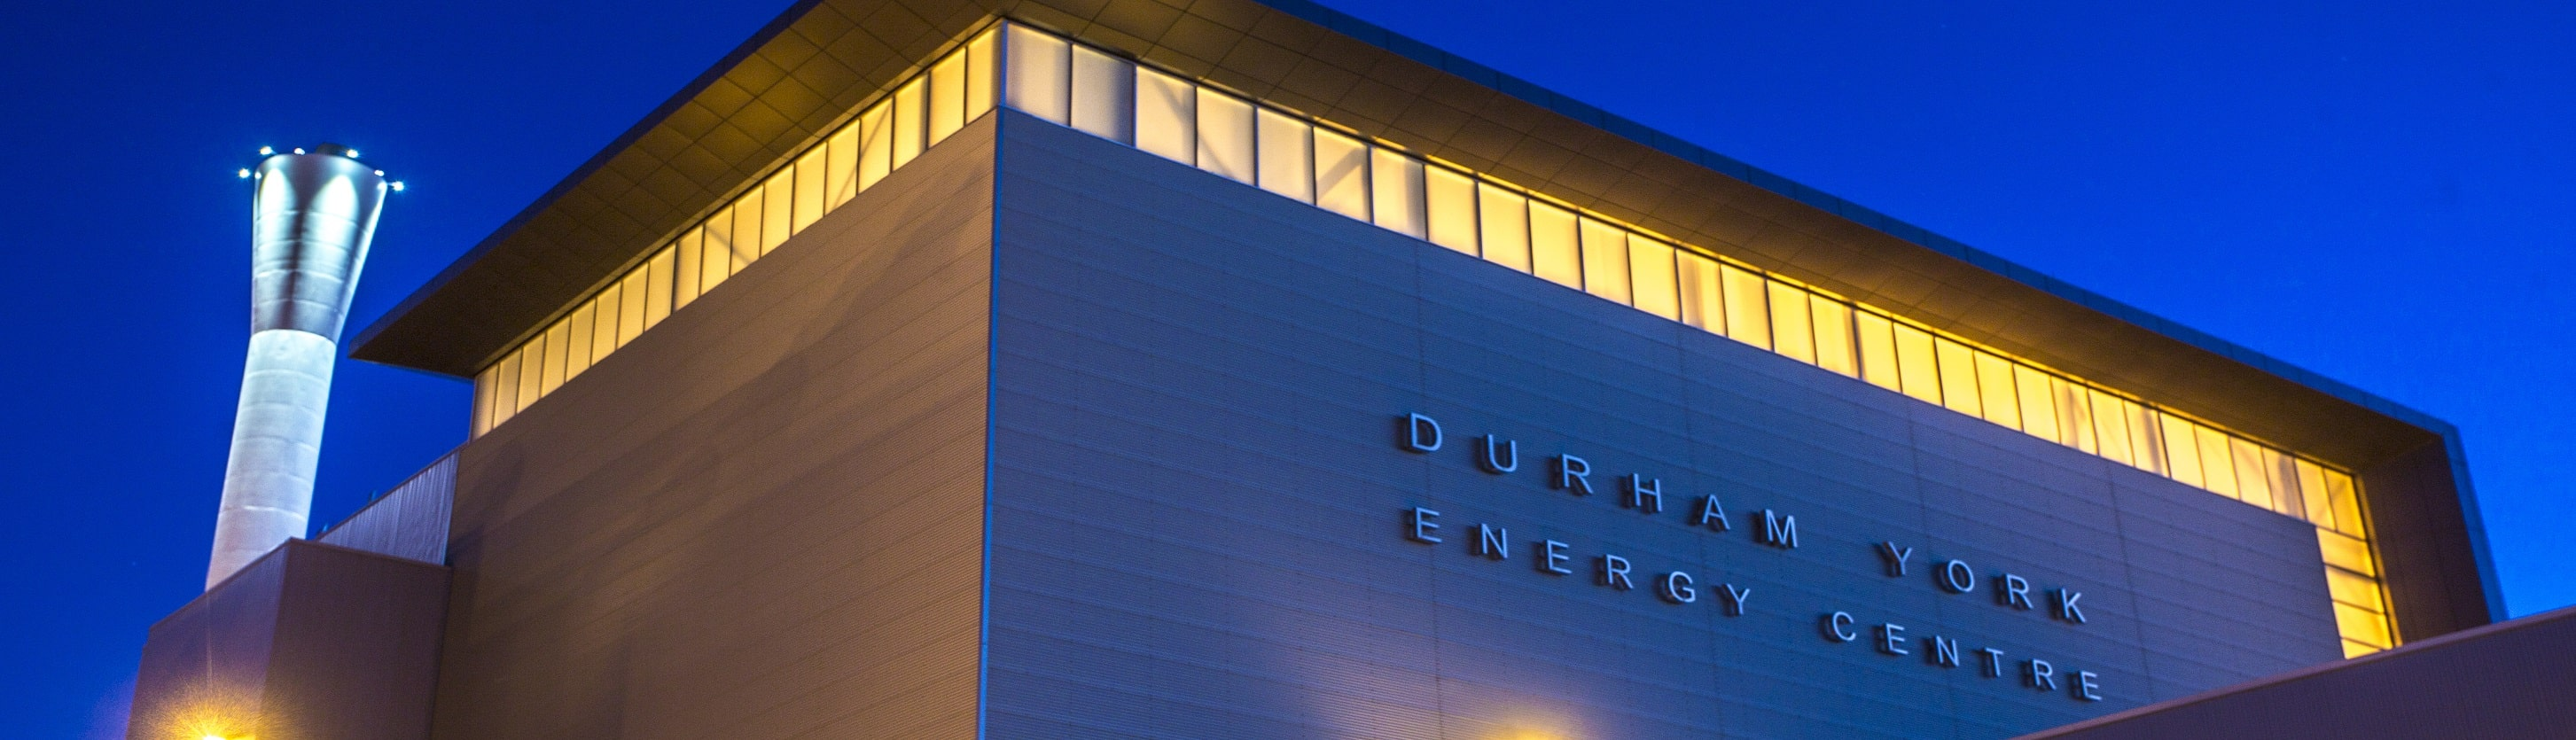 Night view of the Durham York Energy Centre sign on building